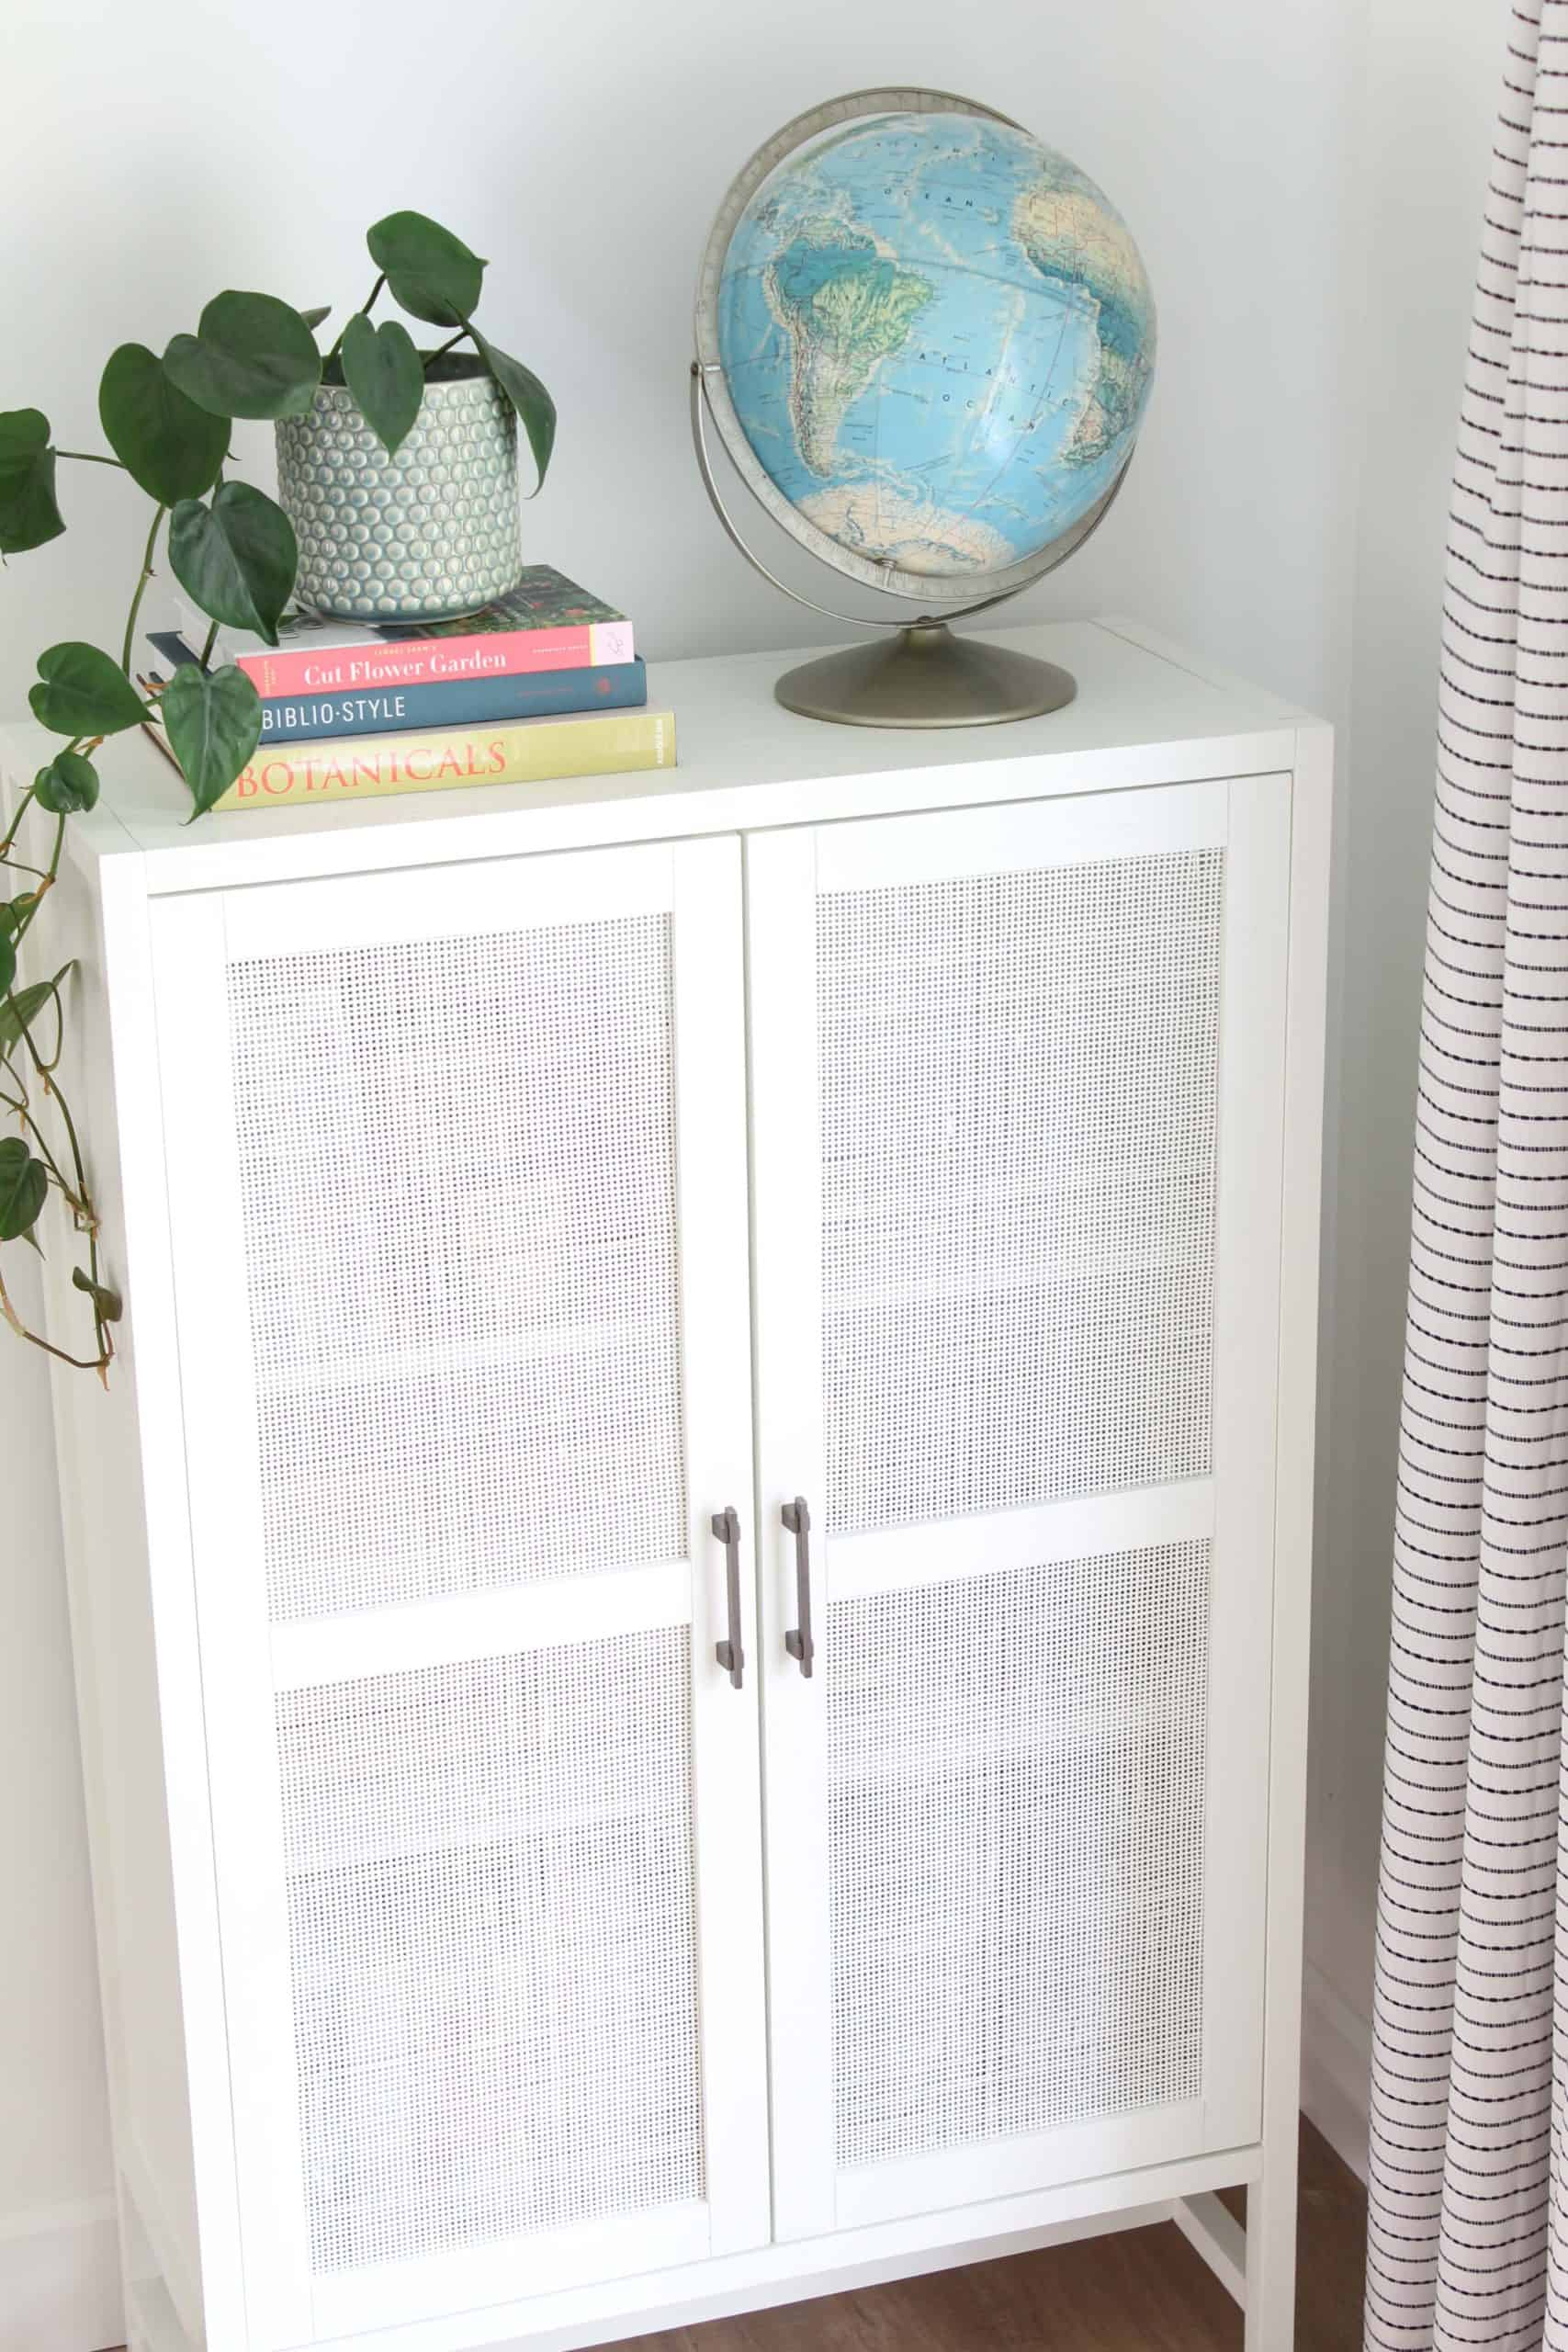 target warwick library cabinet in white, vintage globe, heart leaf philodendron